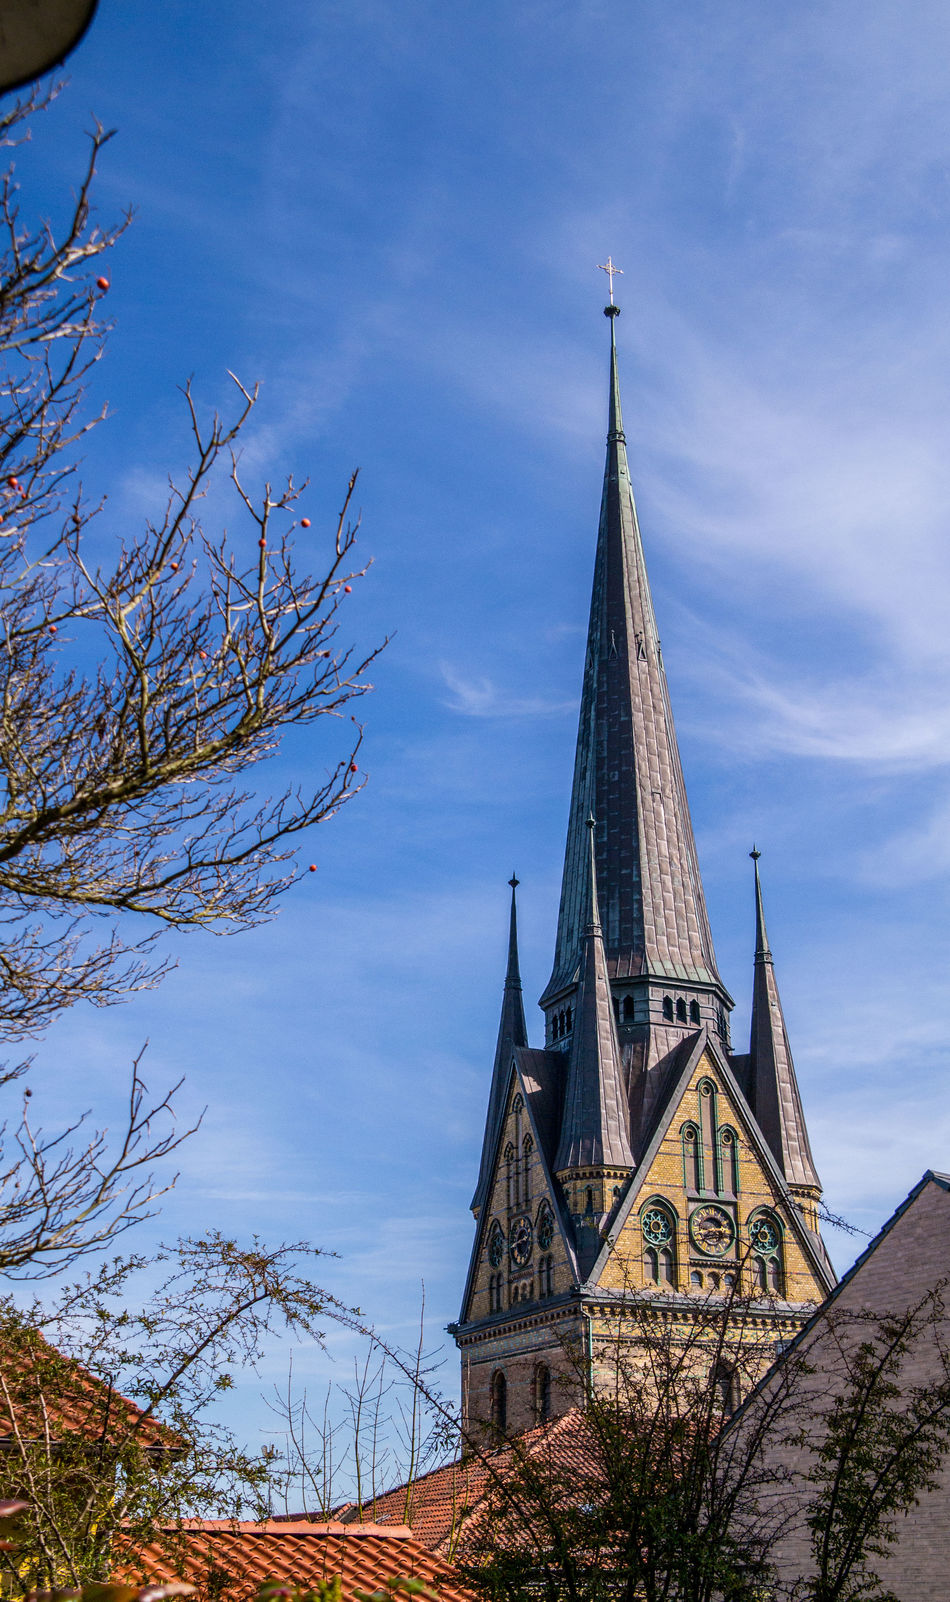 church tower of the Flensburg St Nikolai church from distance Architecture Built Structure Church Church Tower Church Towers Cultures Day Flensburg No People Outdoors Place Of Worship Religion Sky Spirituality St Nikolai Sunny Tower Tree